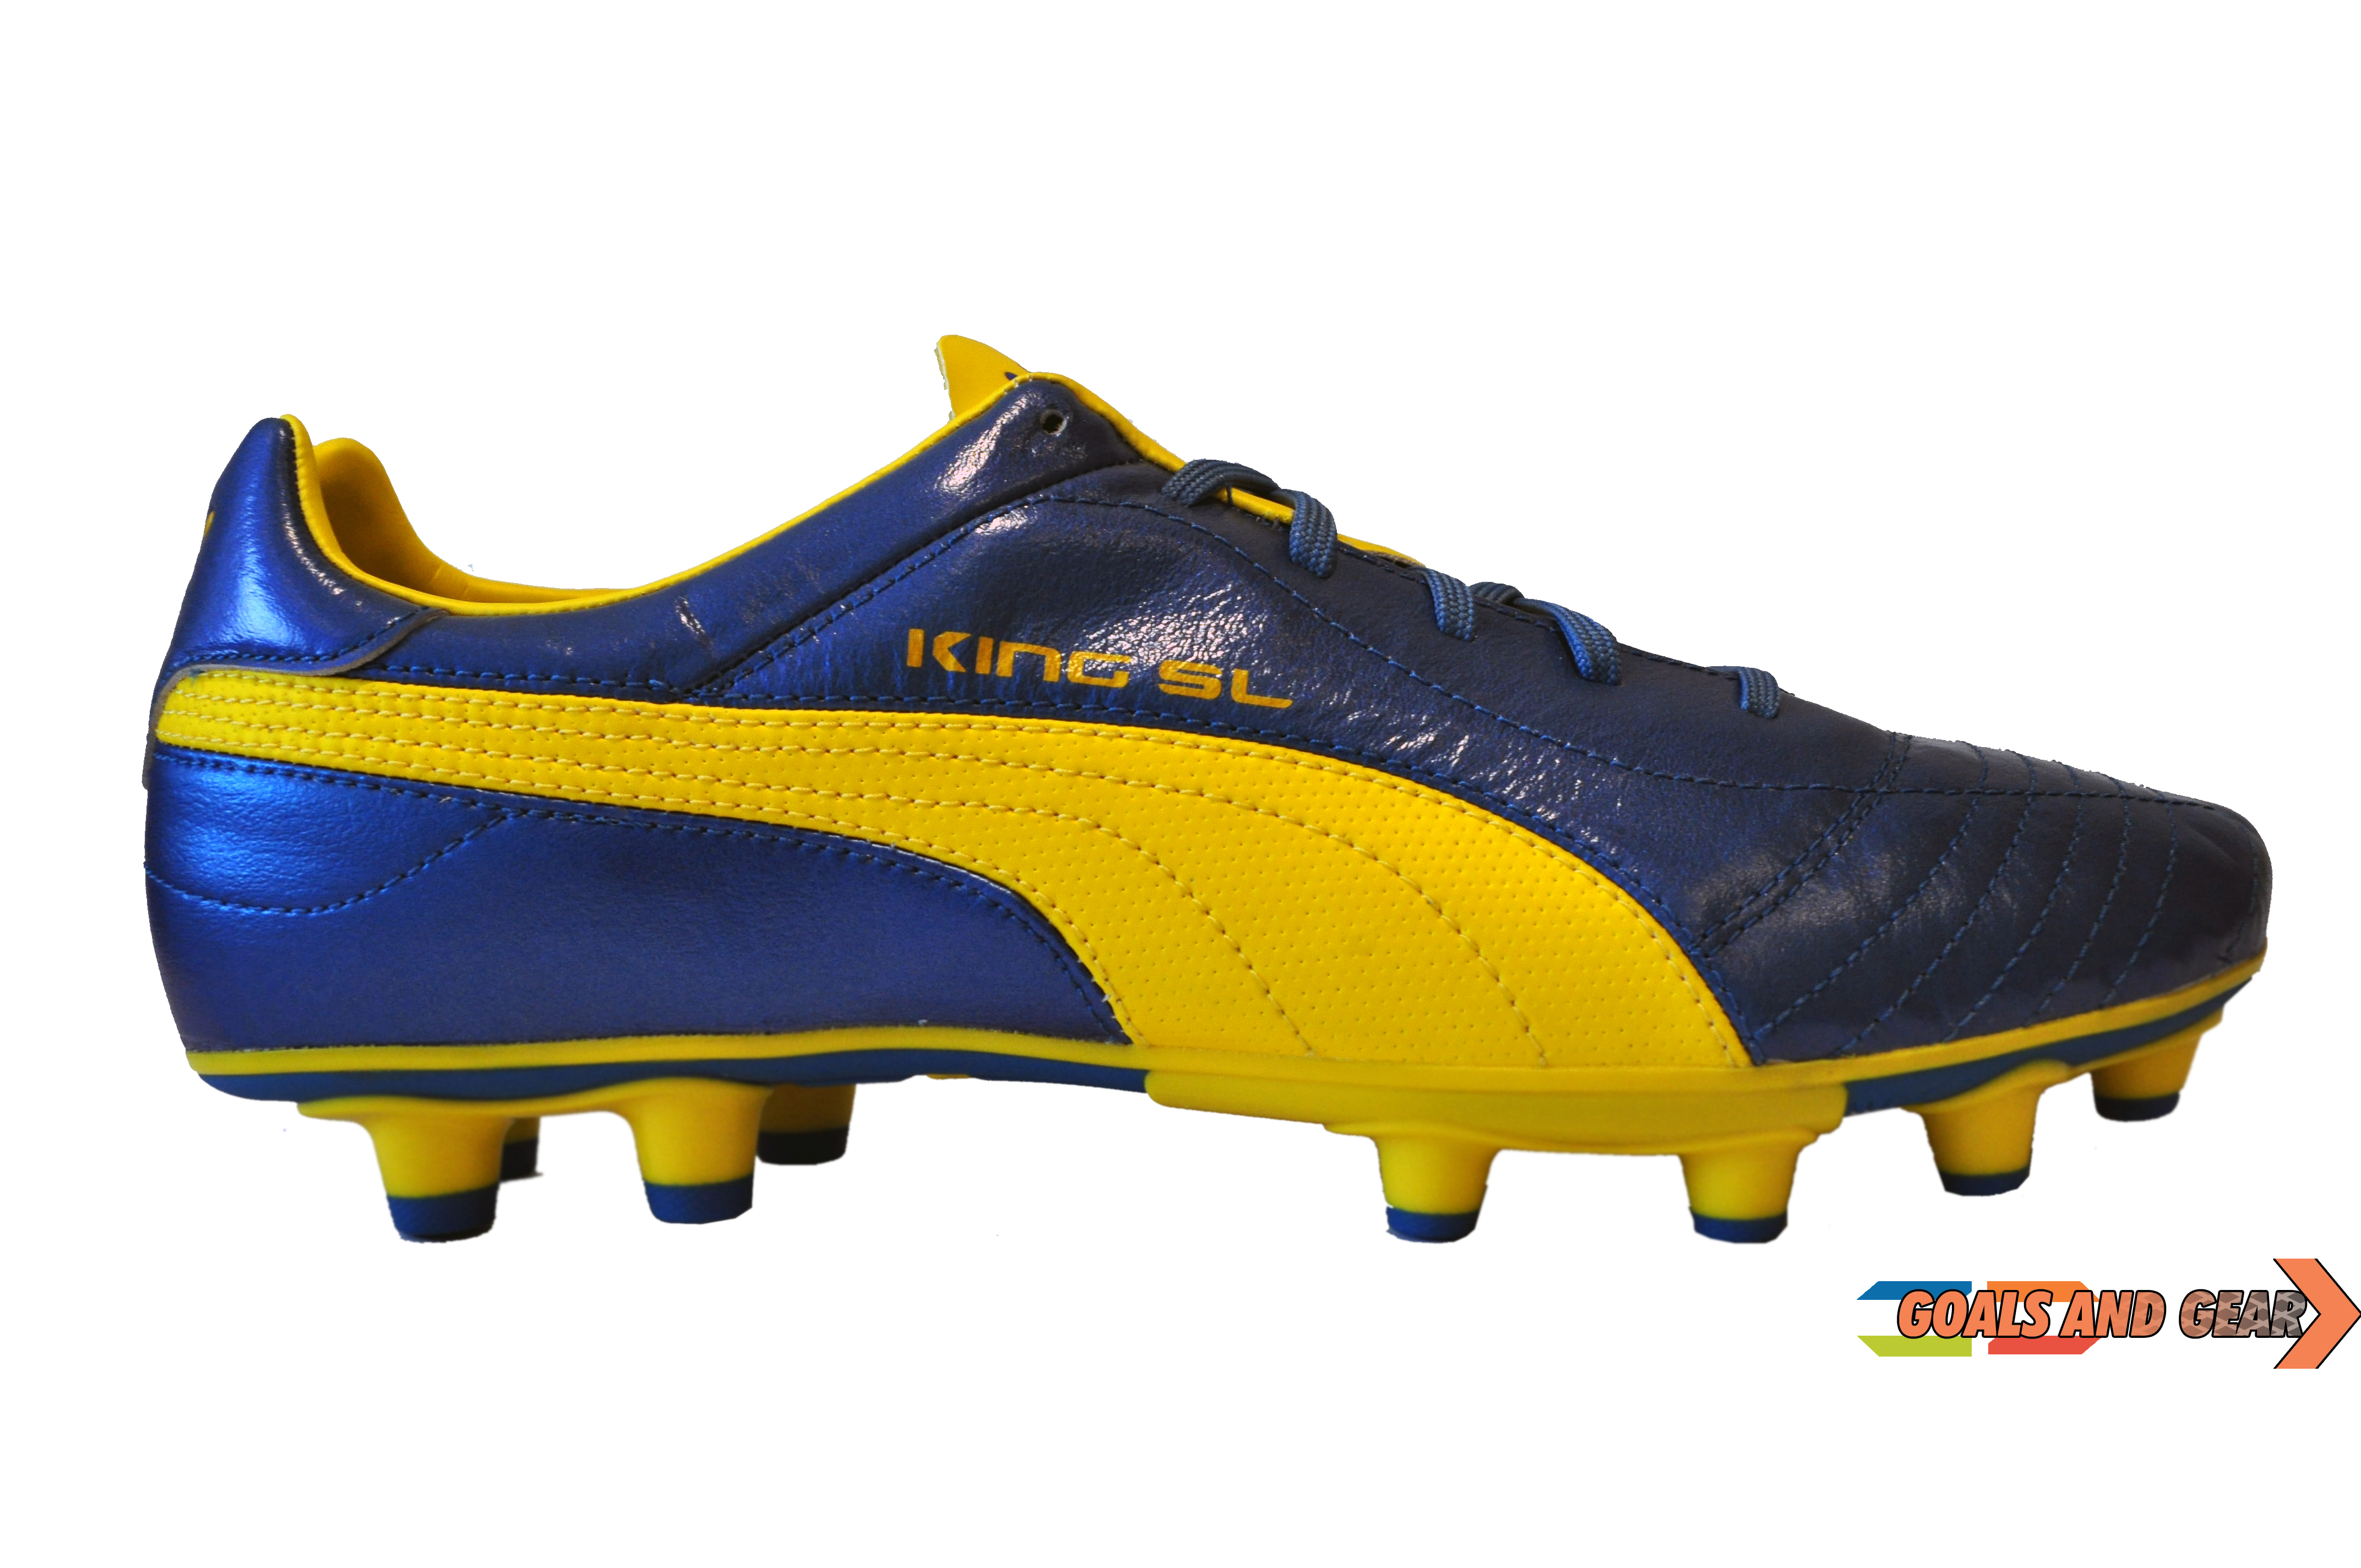 puma king sl yellow